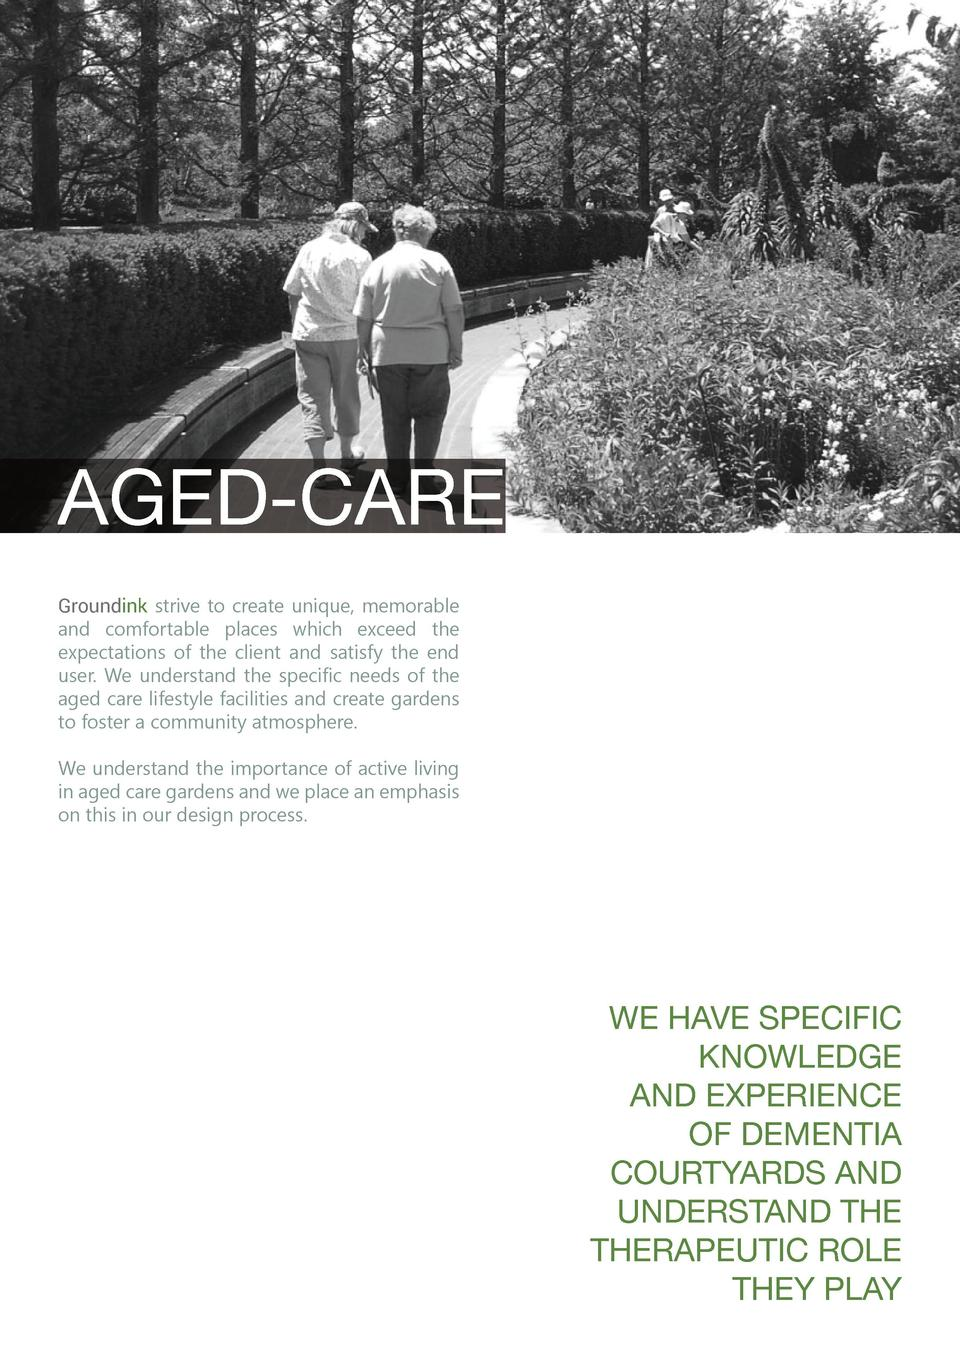 AGED-CARE Groundink strive to create unique, memorable and comfortable places which exceed the expectations of the client ...